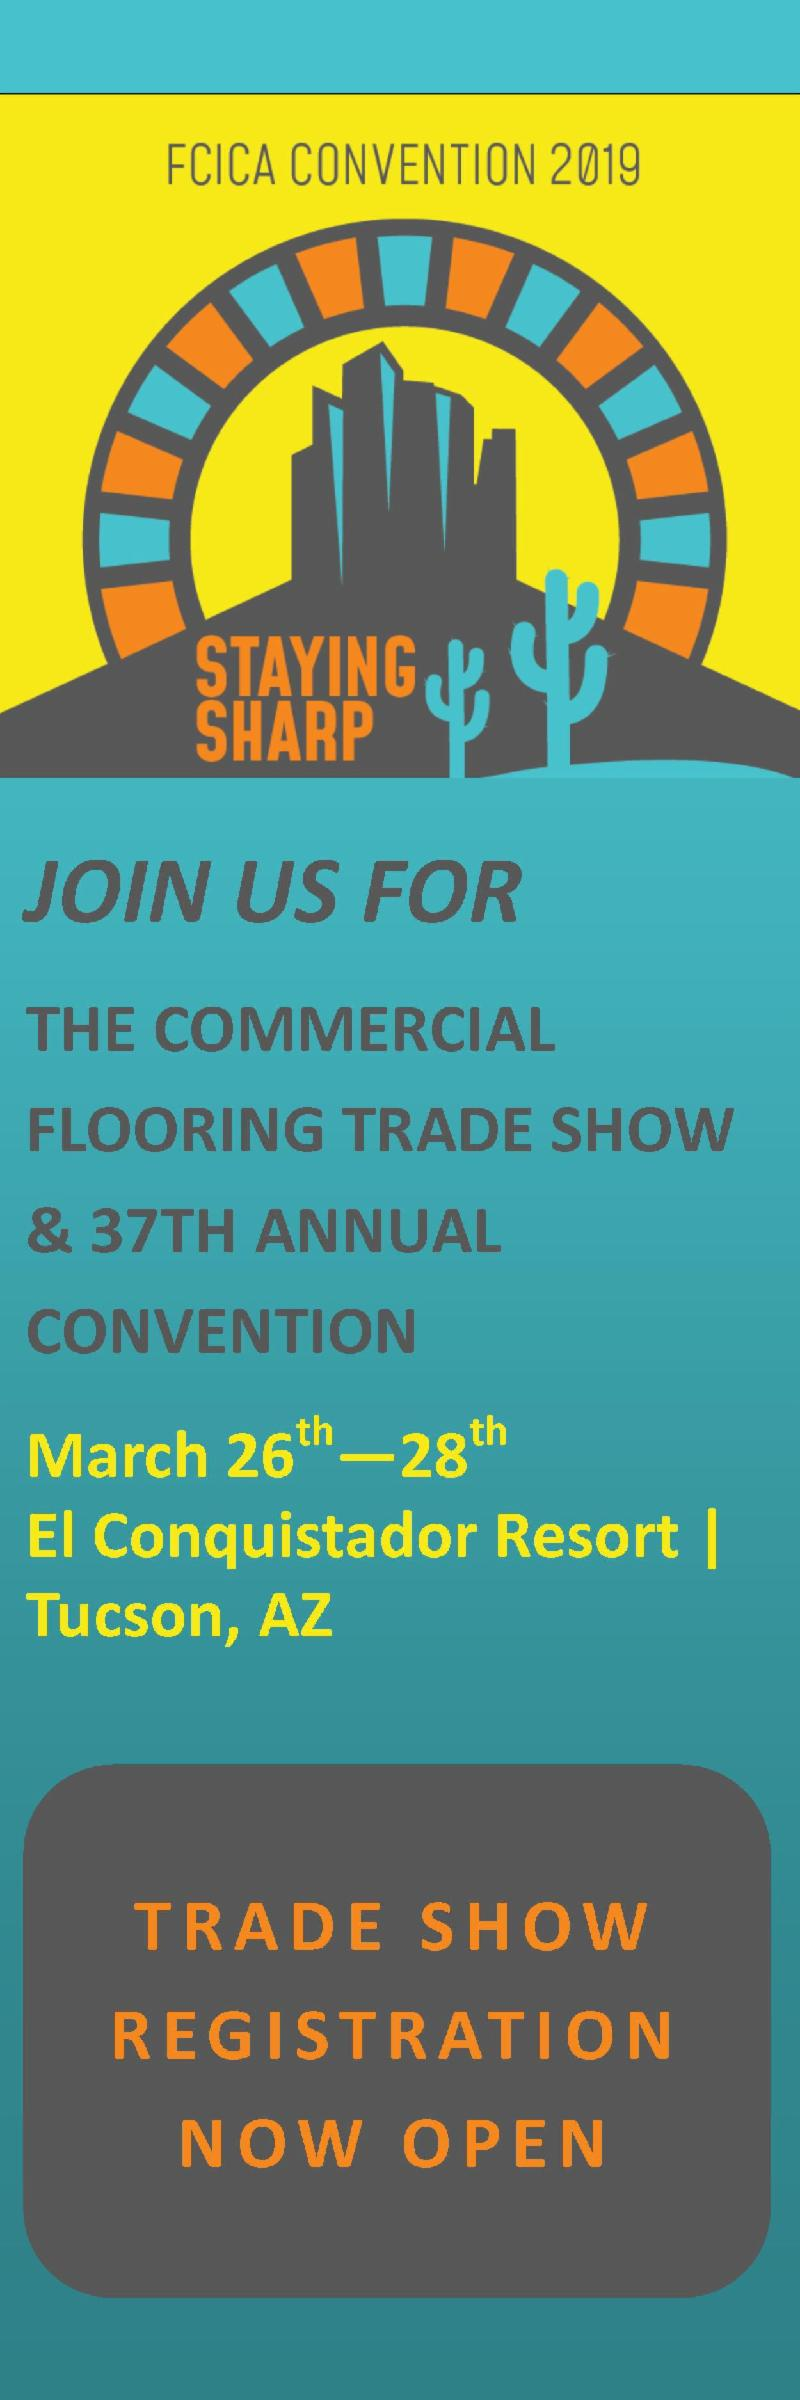 2019 Commercial Flooring Trade Show and FCICA's 37th Annual Convention - learn more and register!